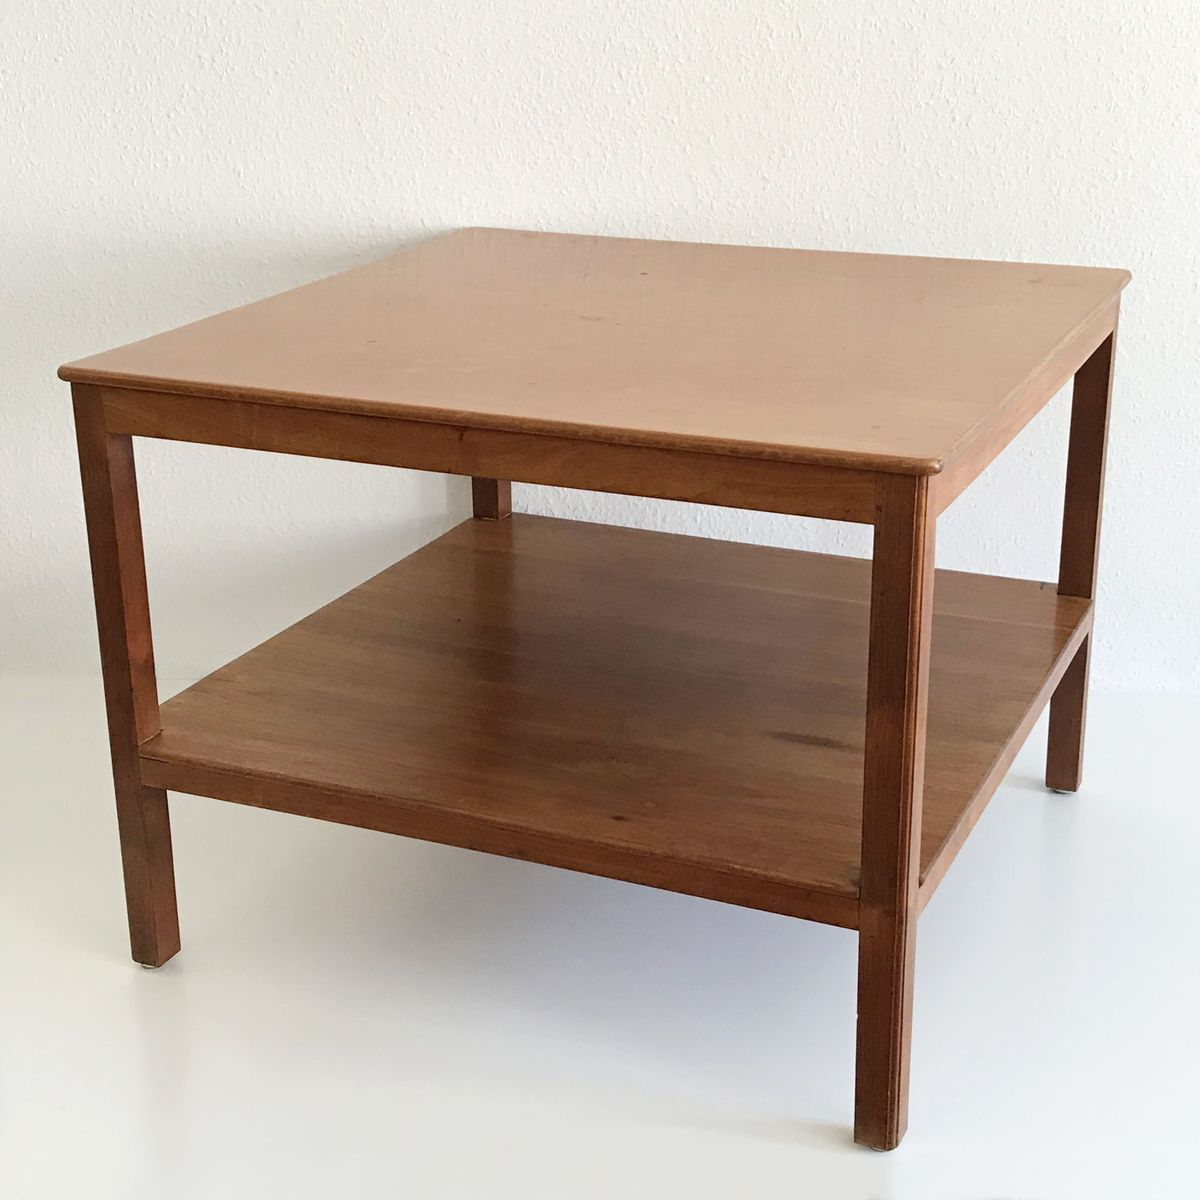 Danish Minimalist Coffee Tablekaare Klint For Rud Rasmussen For Current Minimalist Coffee Tables (View 3 of 20)